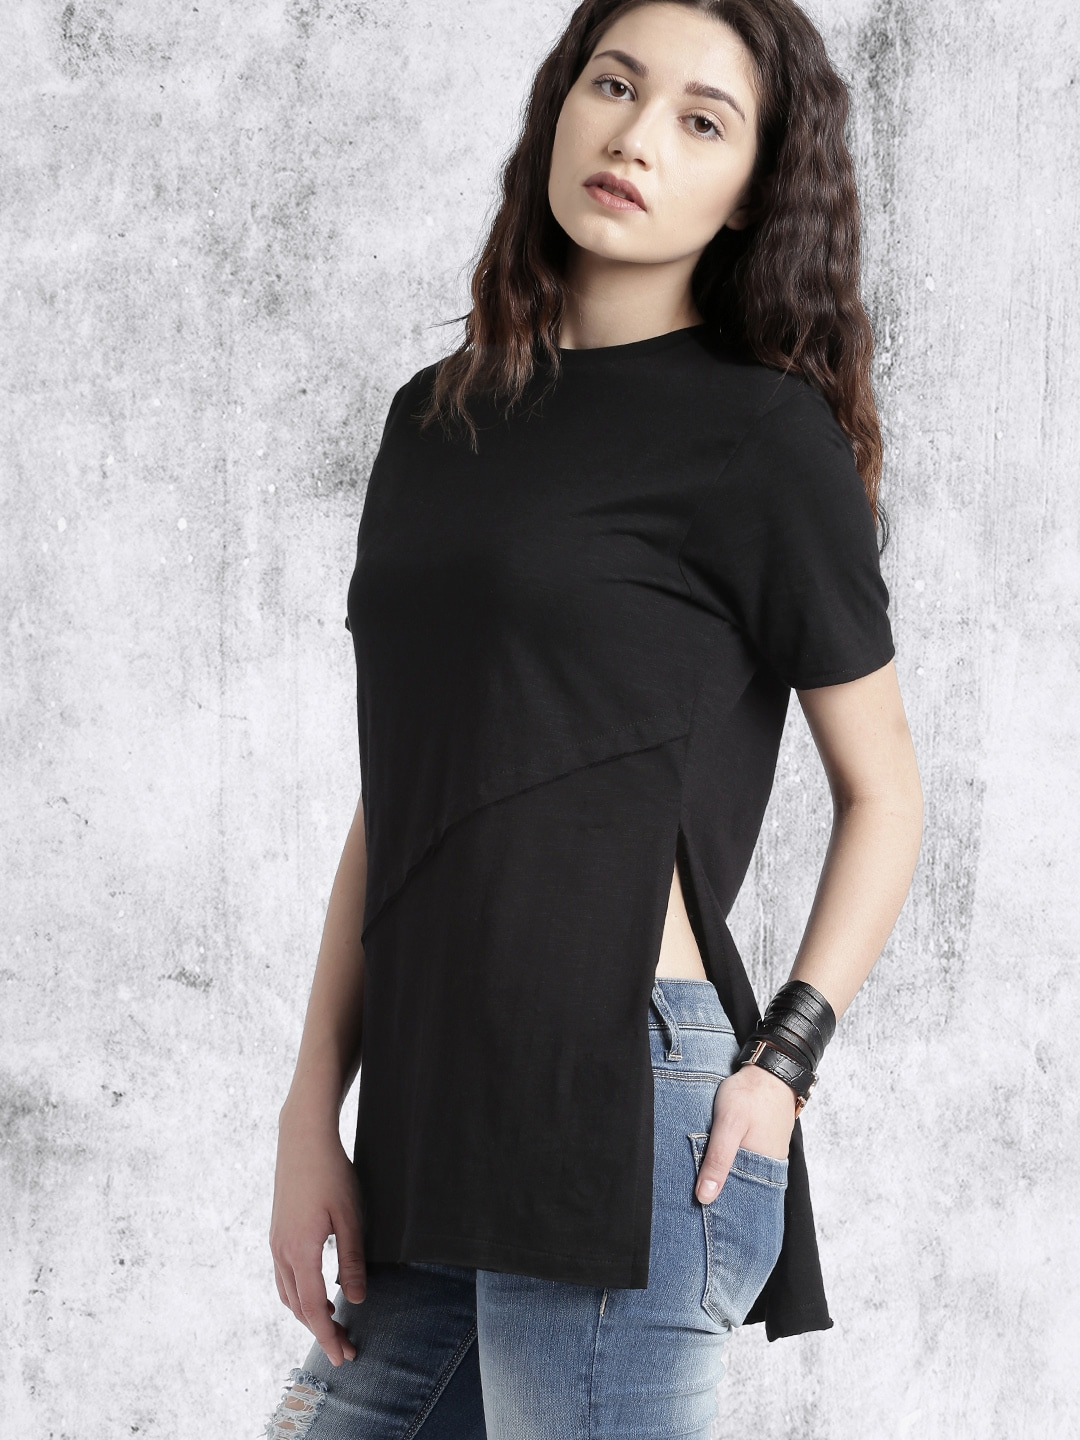 19c9aaffb9821 Black Tops - Buy Black Colour Tops Online in India